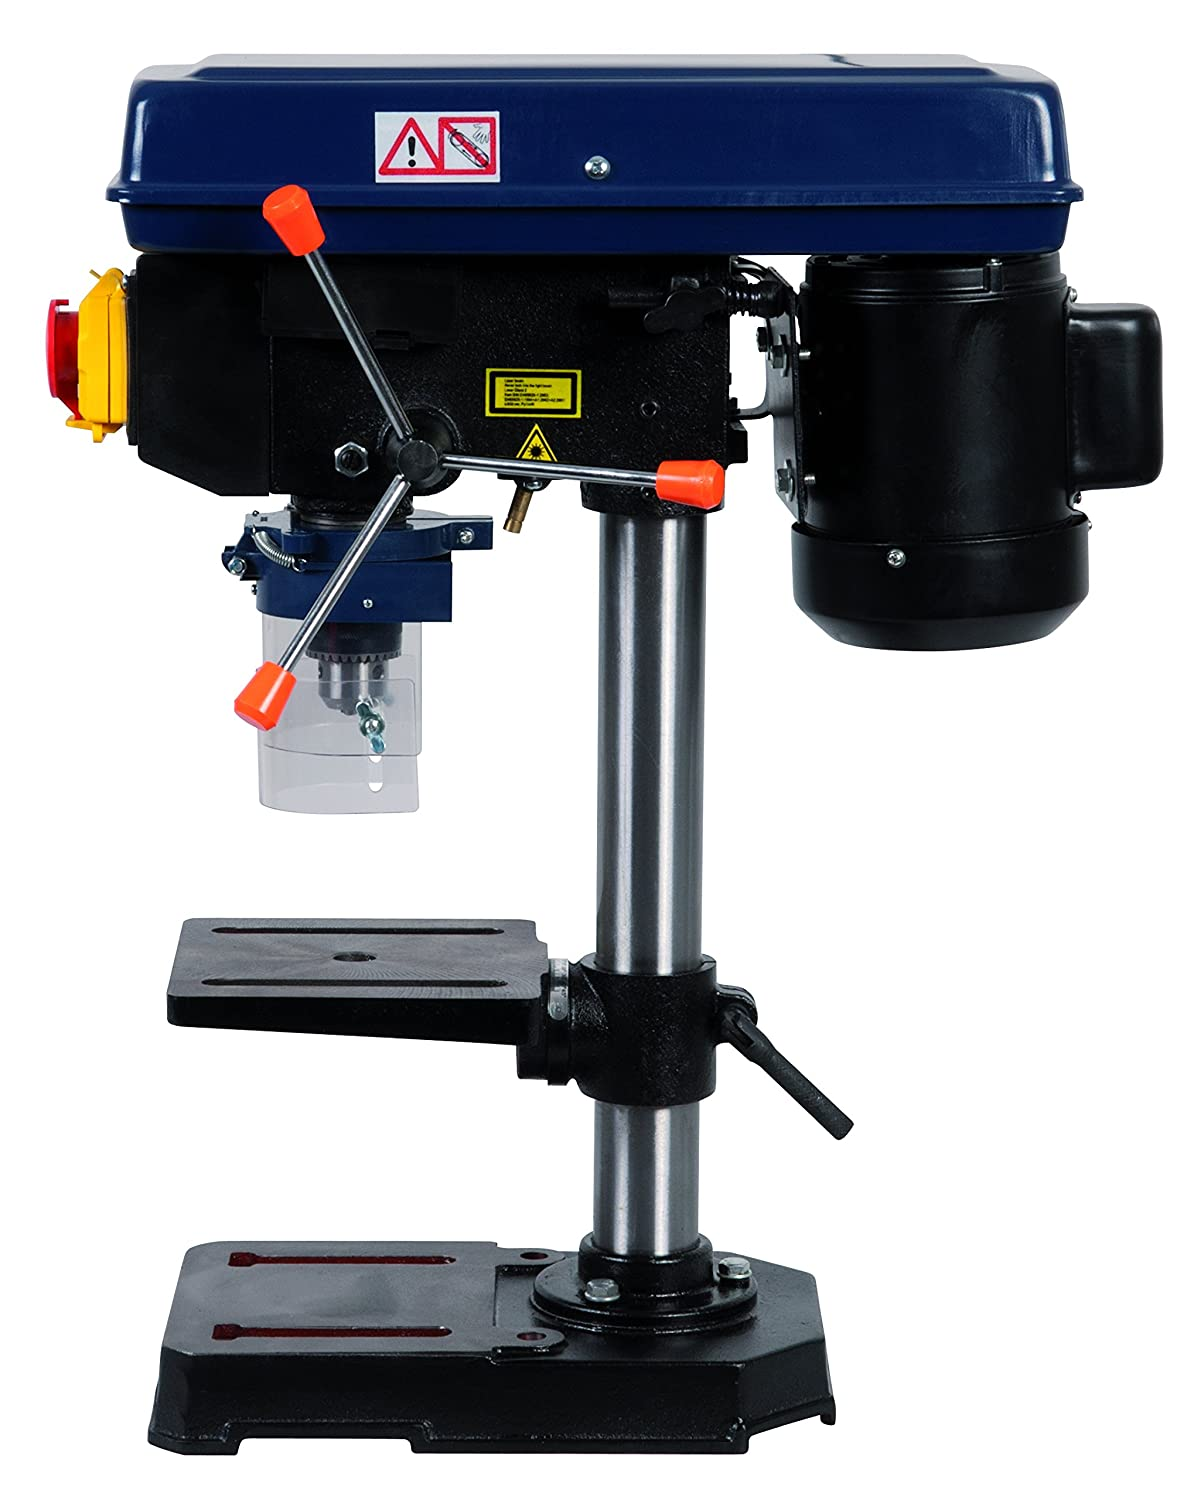 FERM TDM1025 Bench Pillar Drill - Drill Press Table - 350W - Laser Guidance - 5 Speed